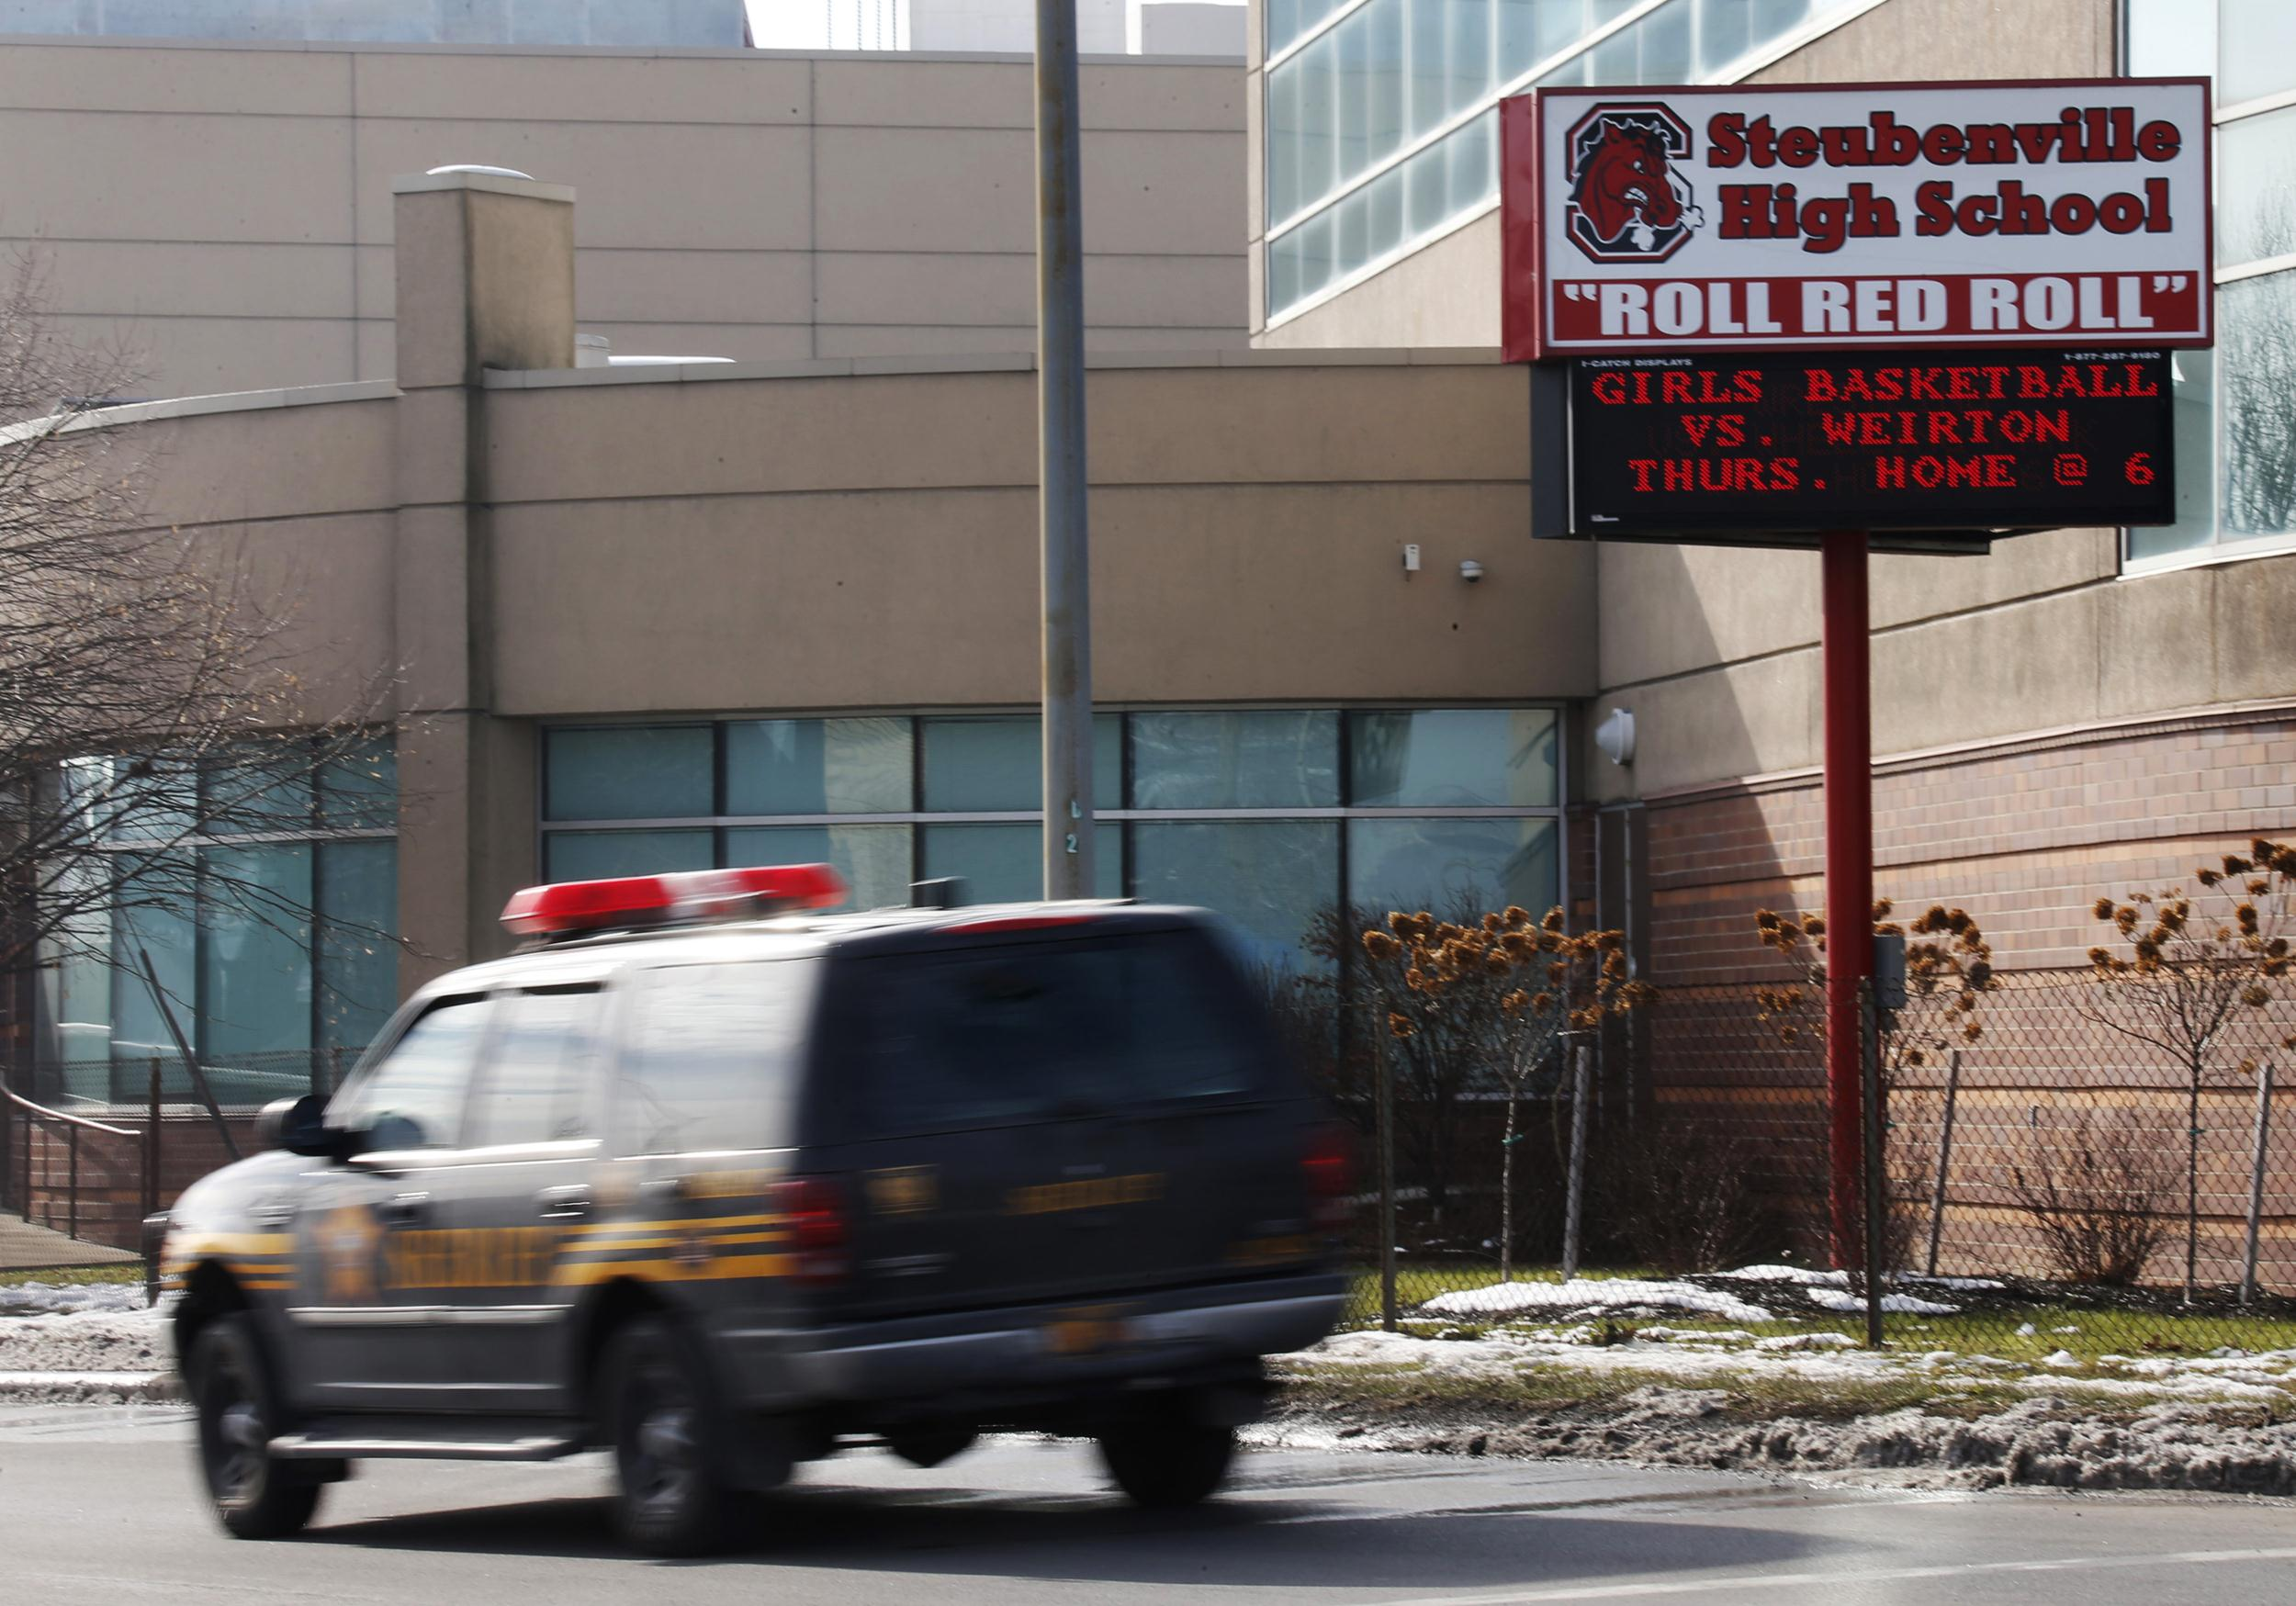 Sheriff's vehicle patrols area around Steubenville High School in Steubenville, Ohio